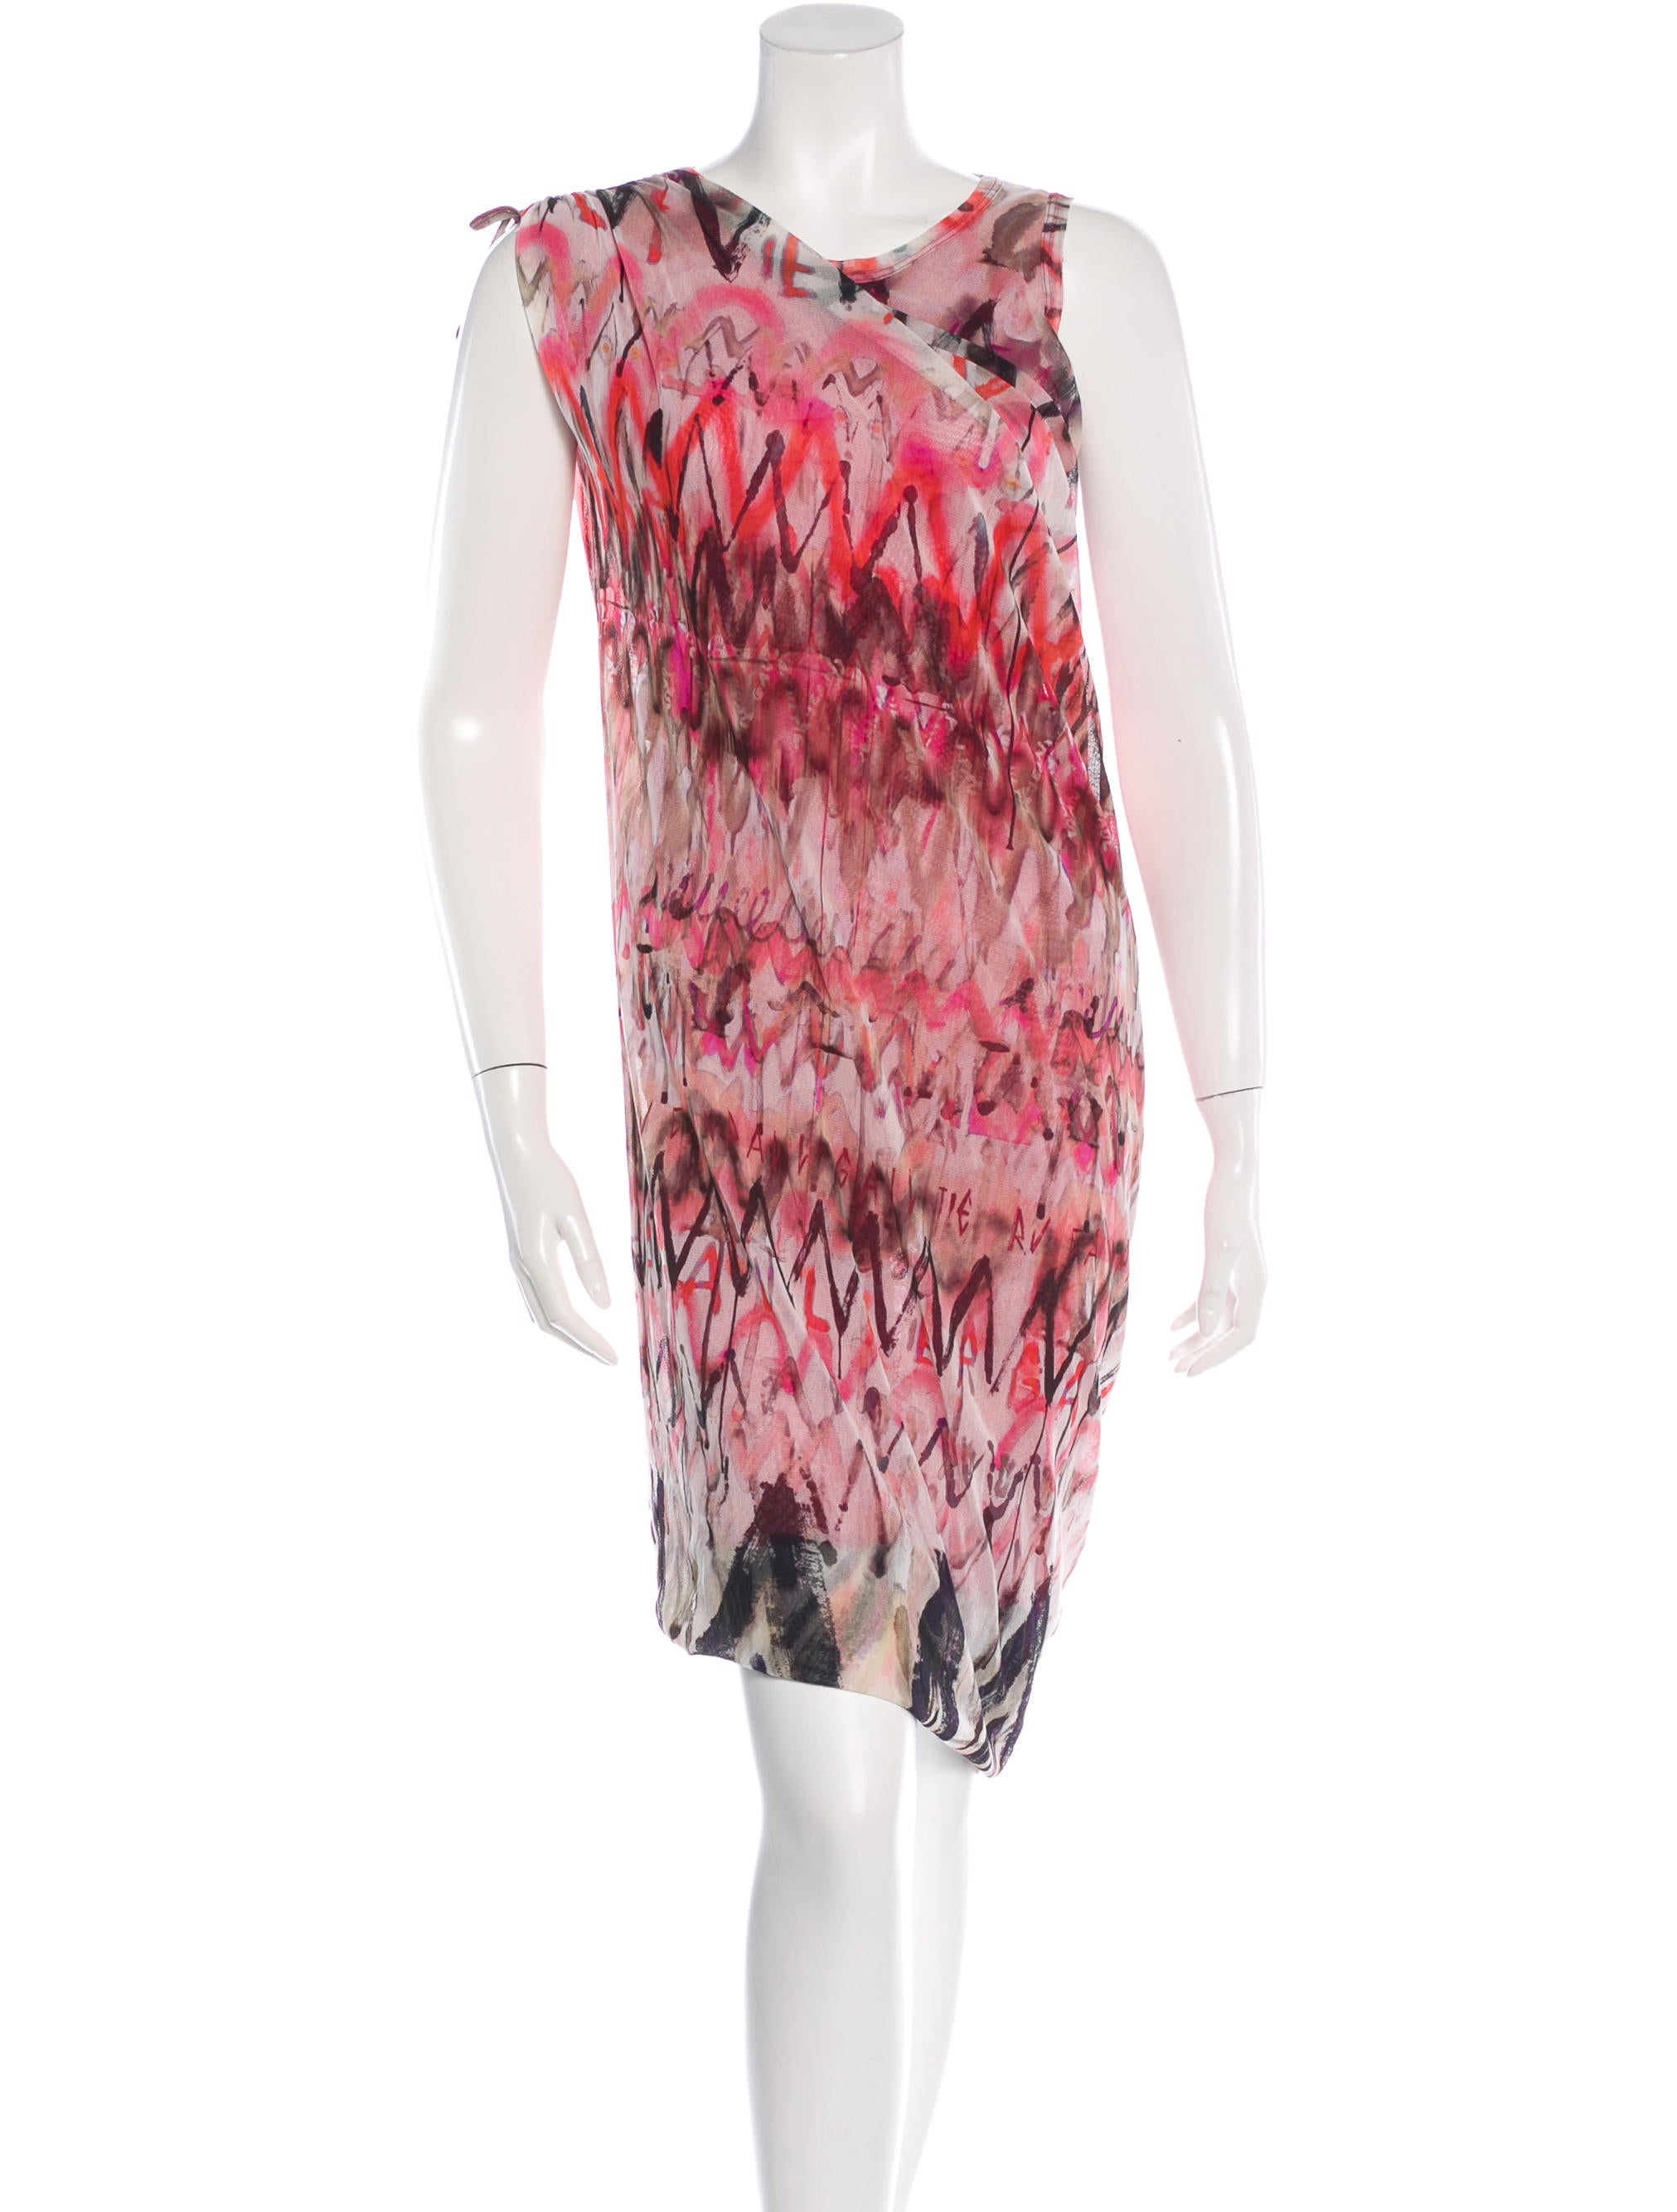 Jean paul gaultier abstract print midi dress clothing for Jean paul gaultier clothing